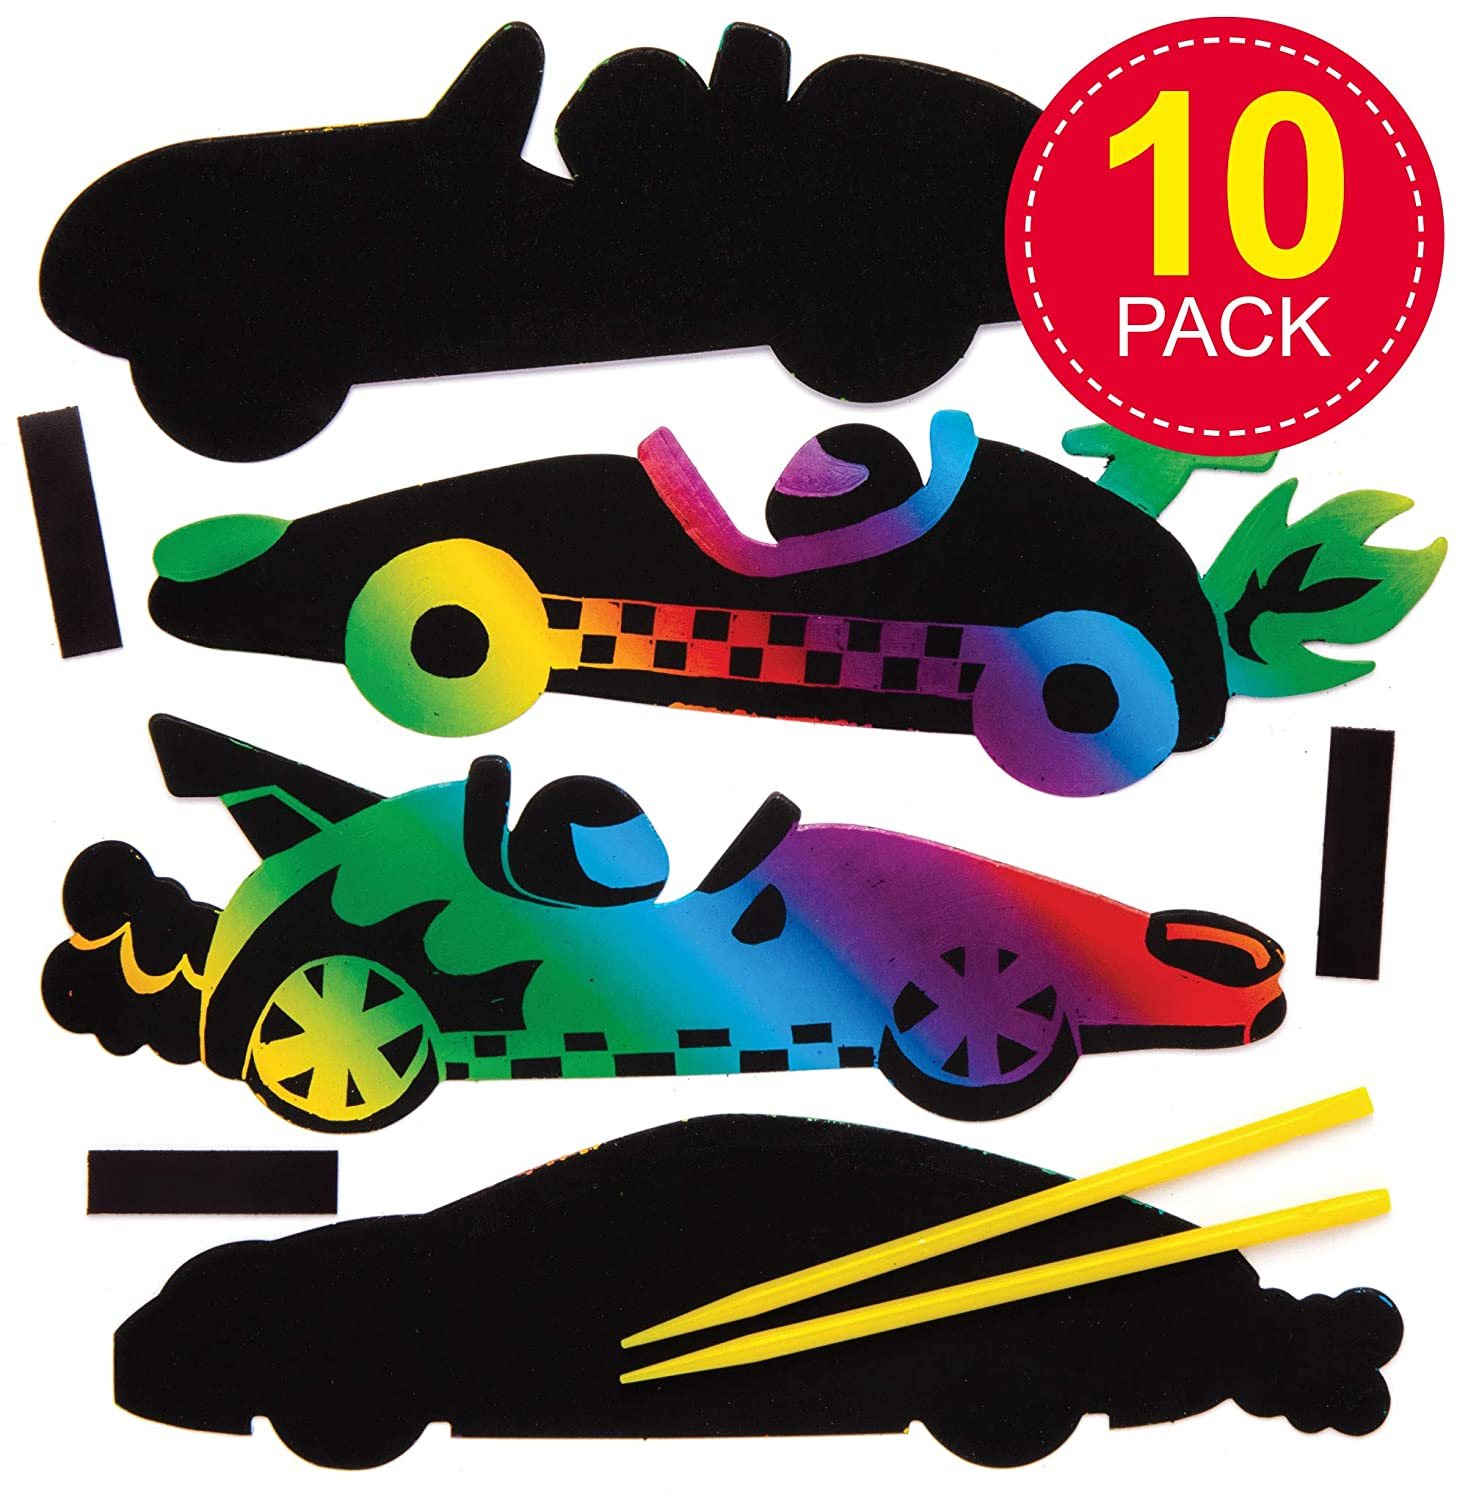 10 Pack Creative Art and Craft Supplies for Kids to Make and Decorate Assorted Baker Ross Bug Wooden Magnets AT610